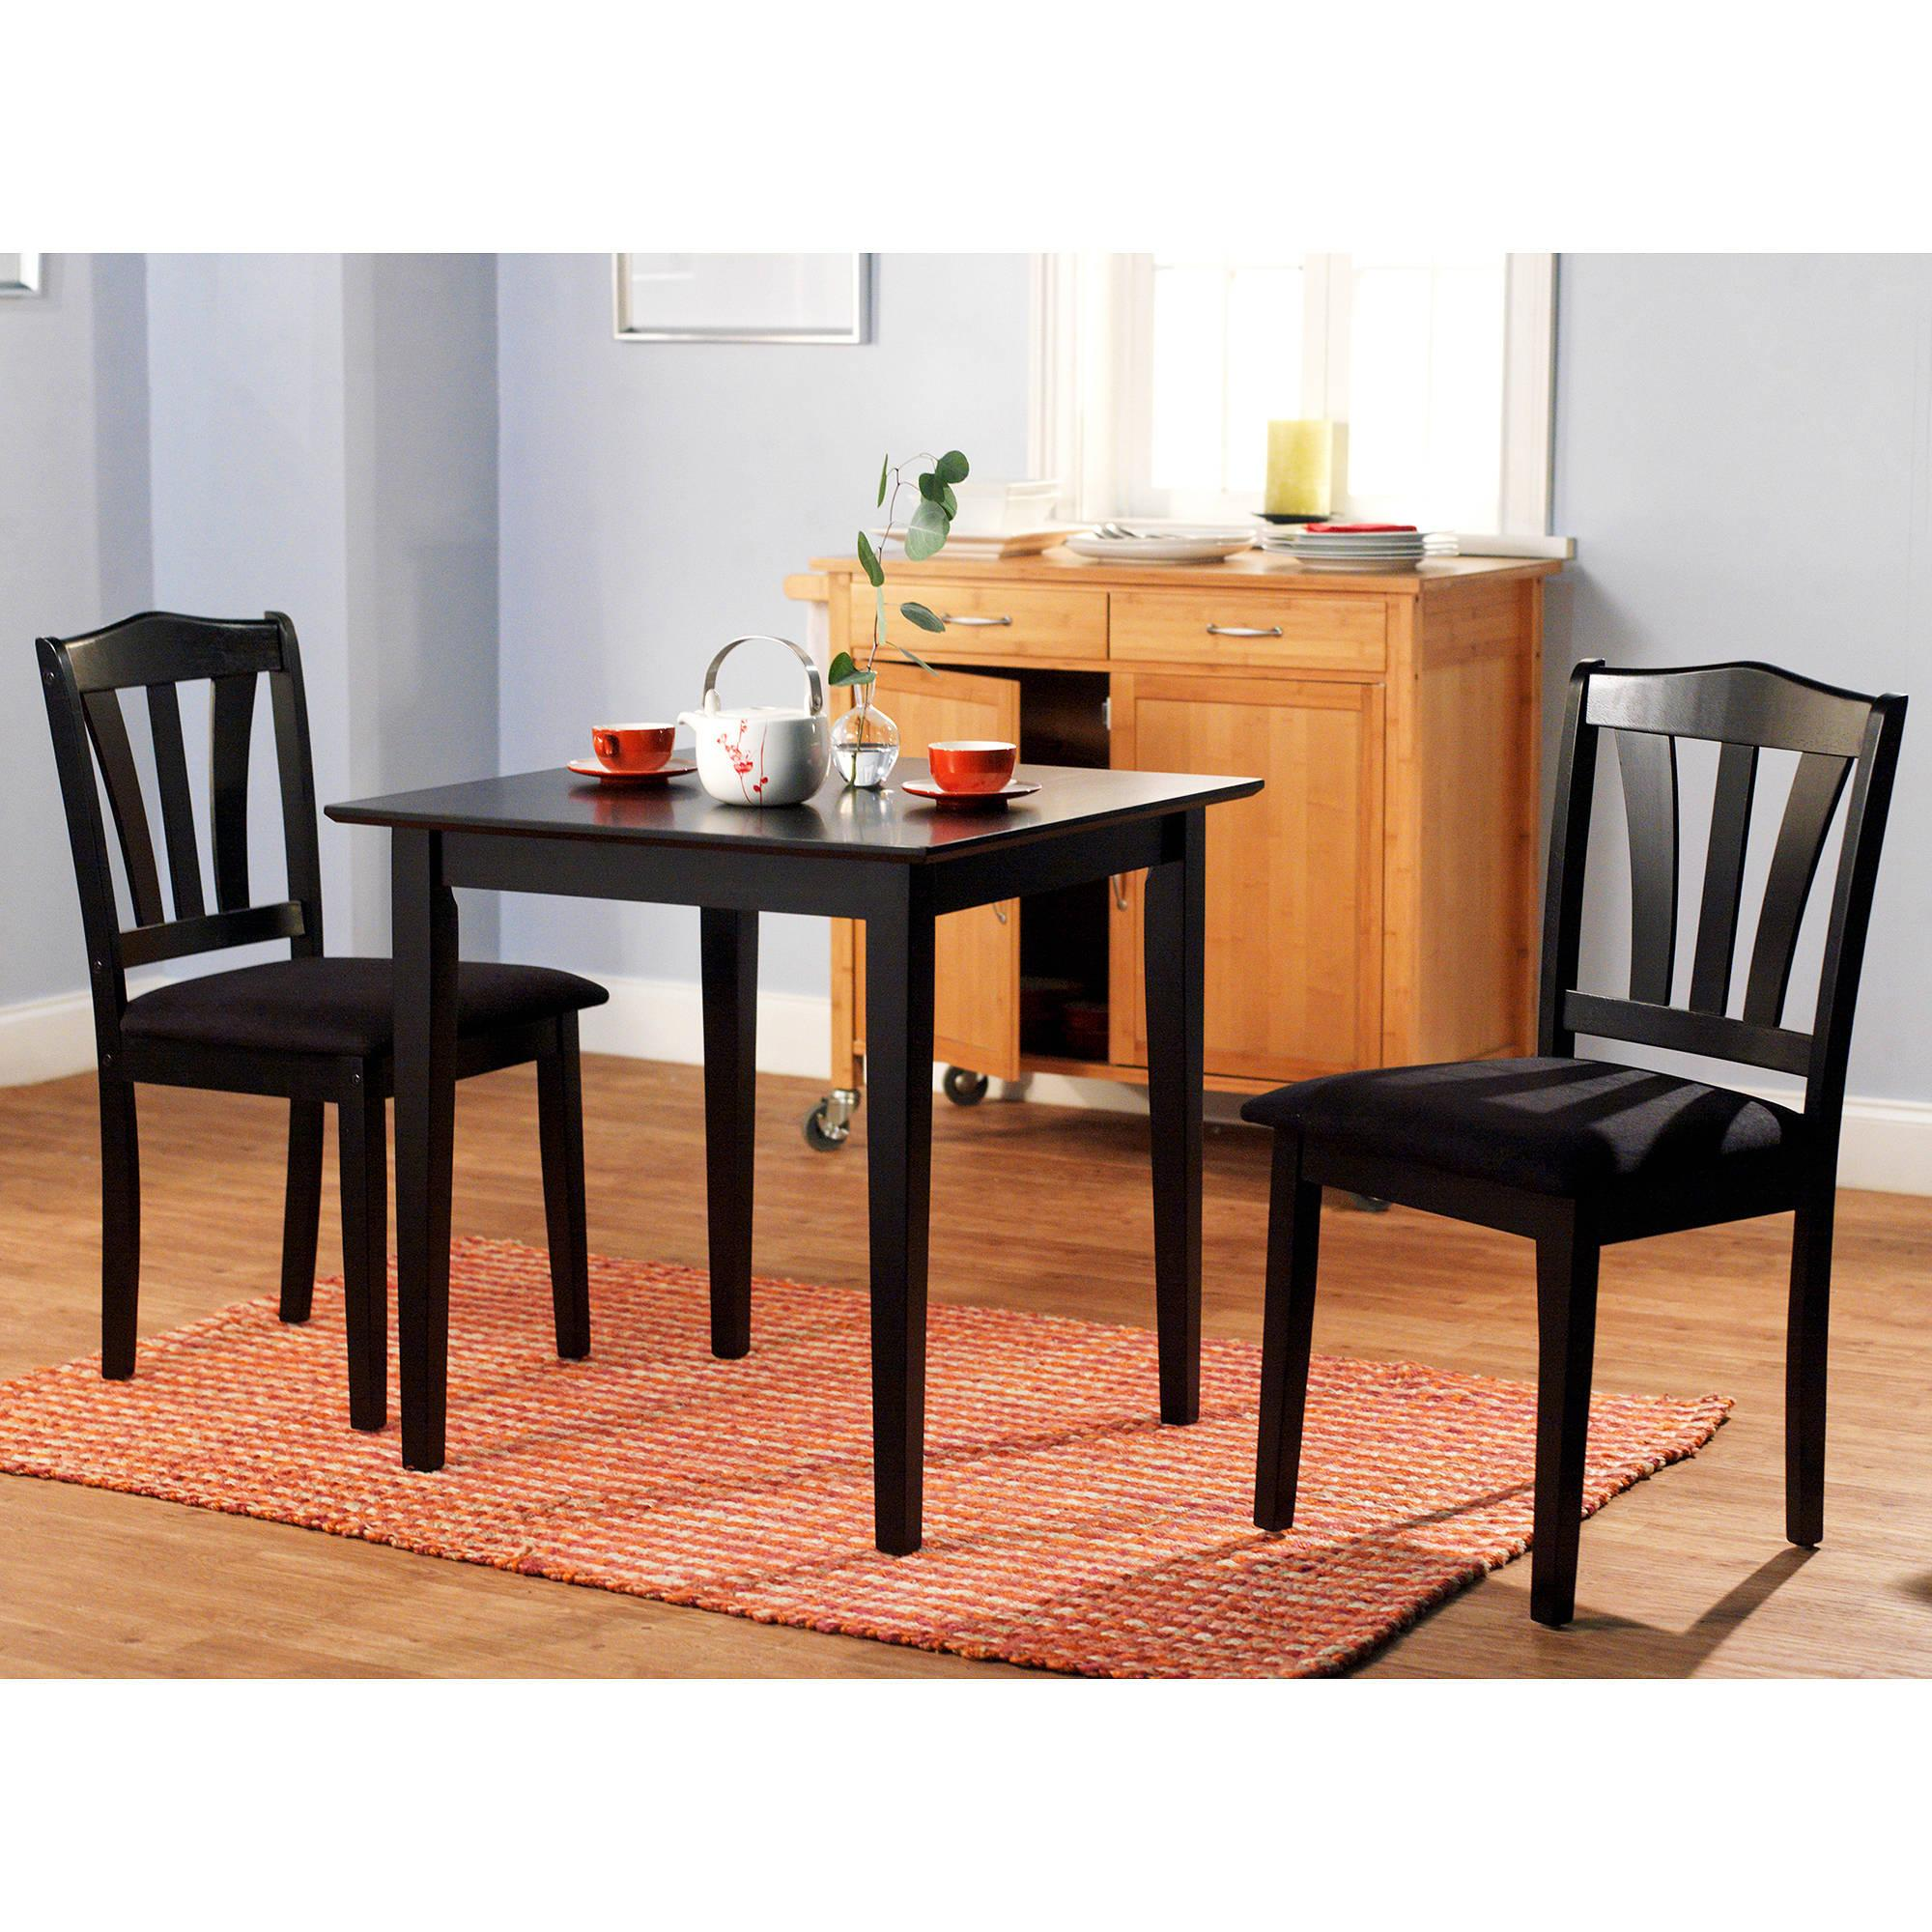 3 piece dining set table 2 chairs kitchen room wood For2 Piece Dining Room Set